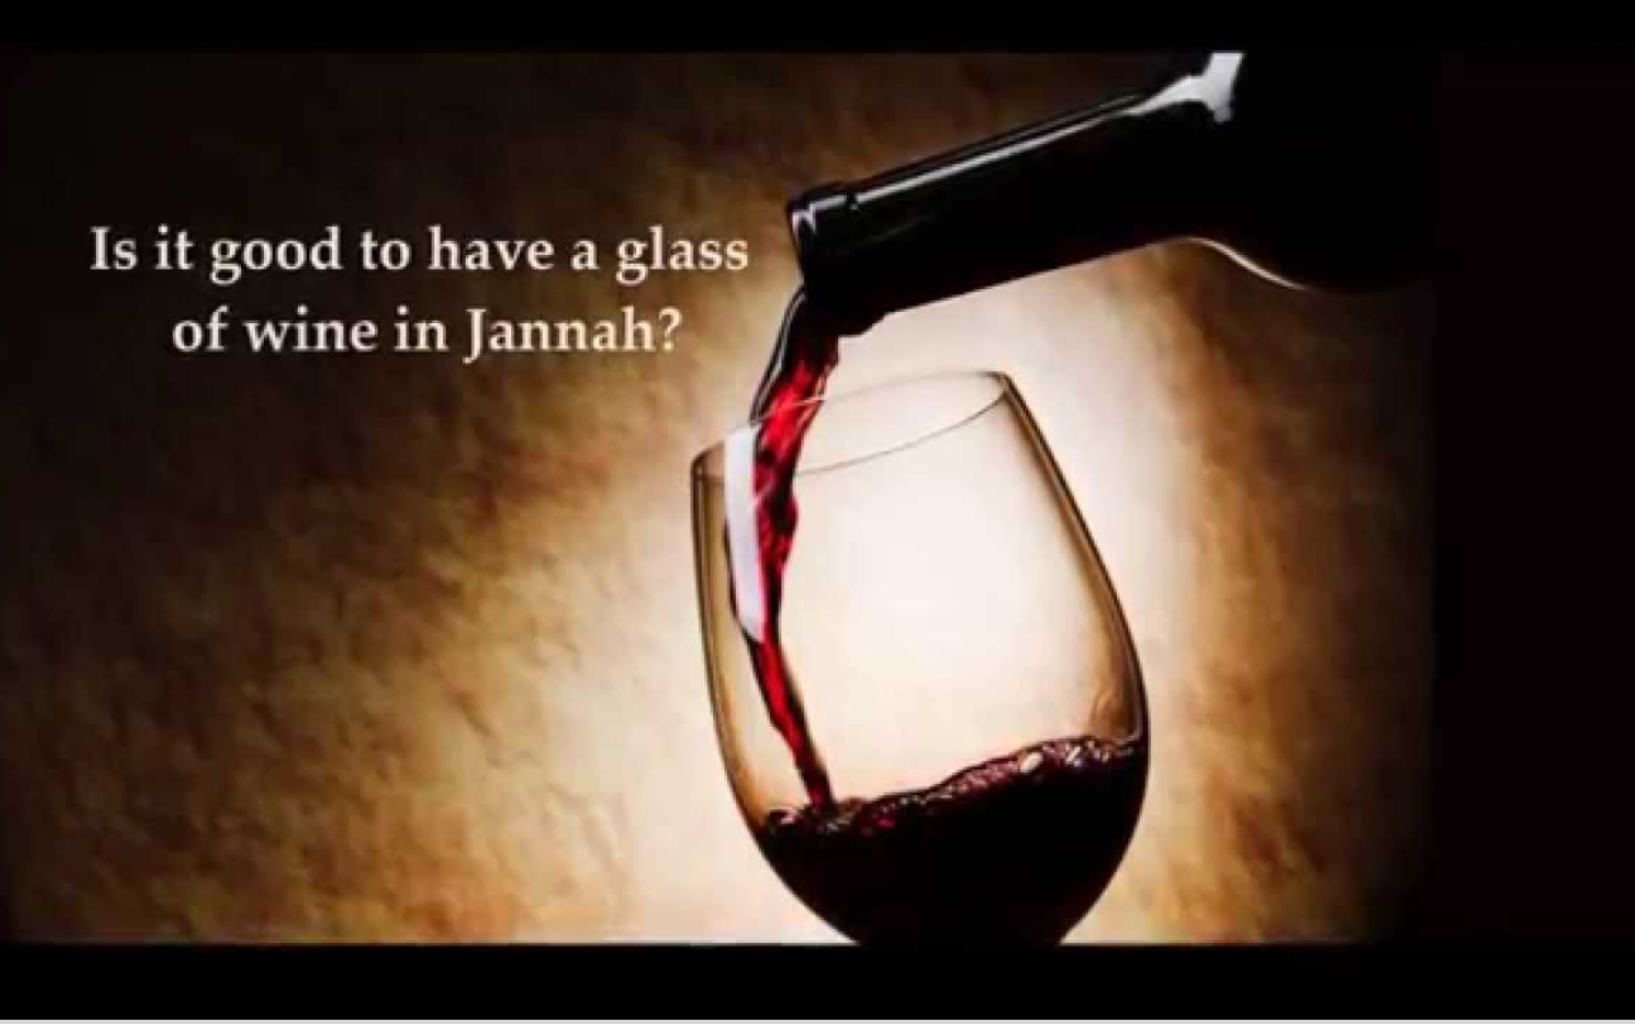 jannah wine alcohol heaven afterlife